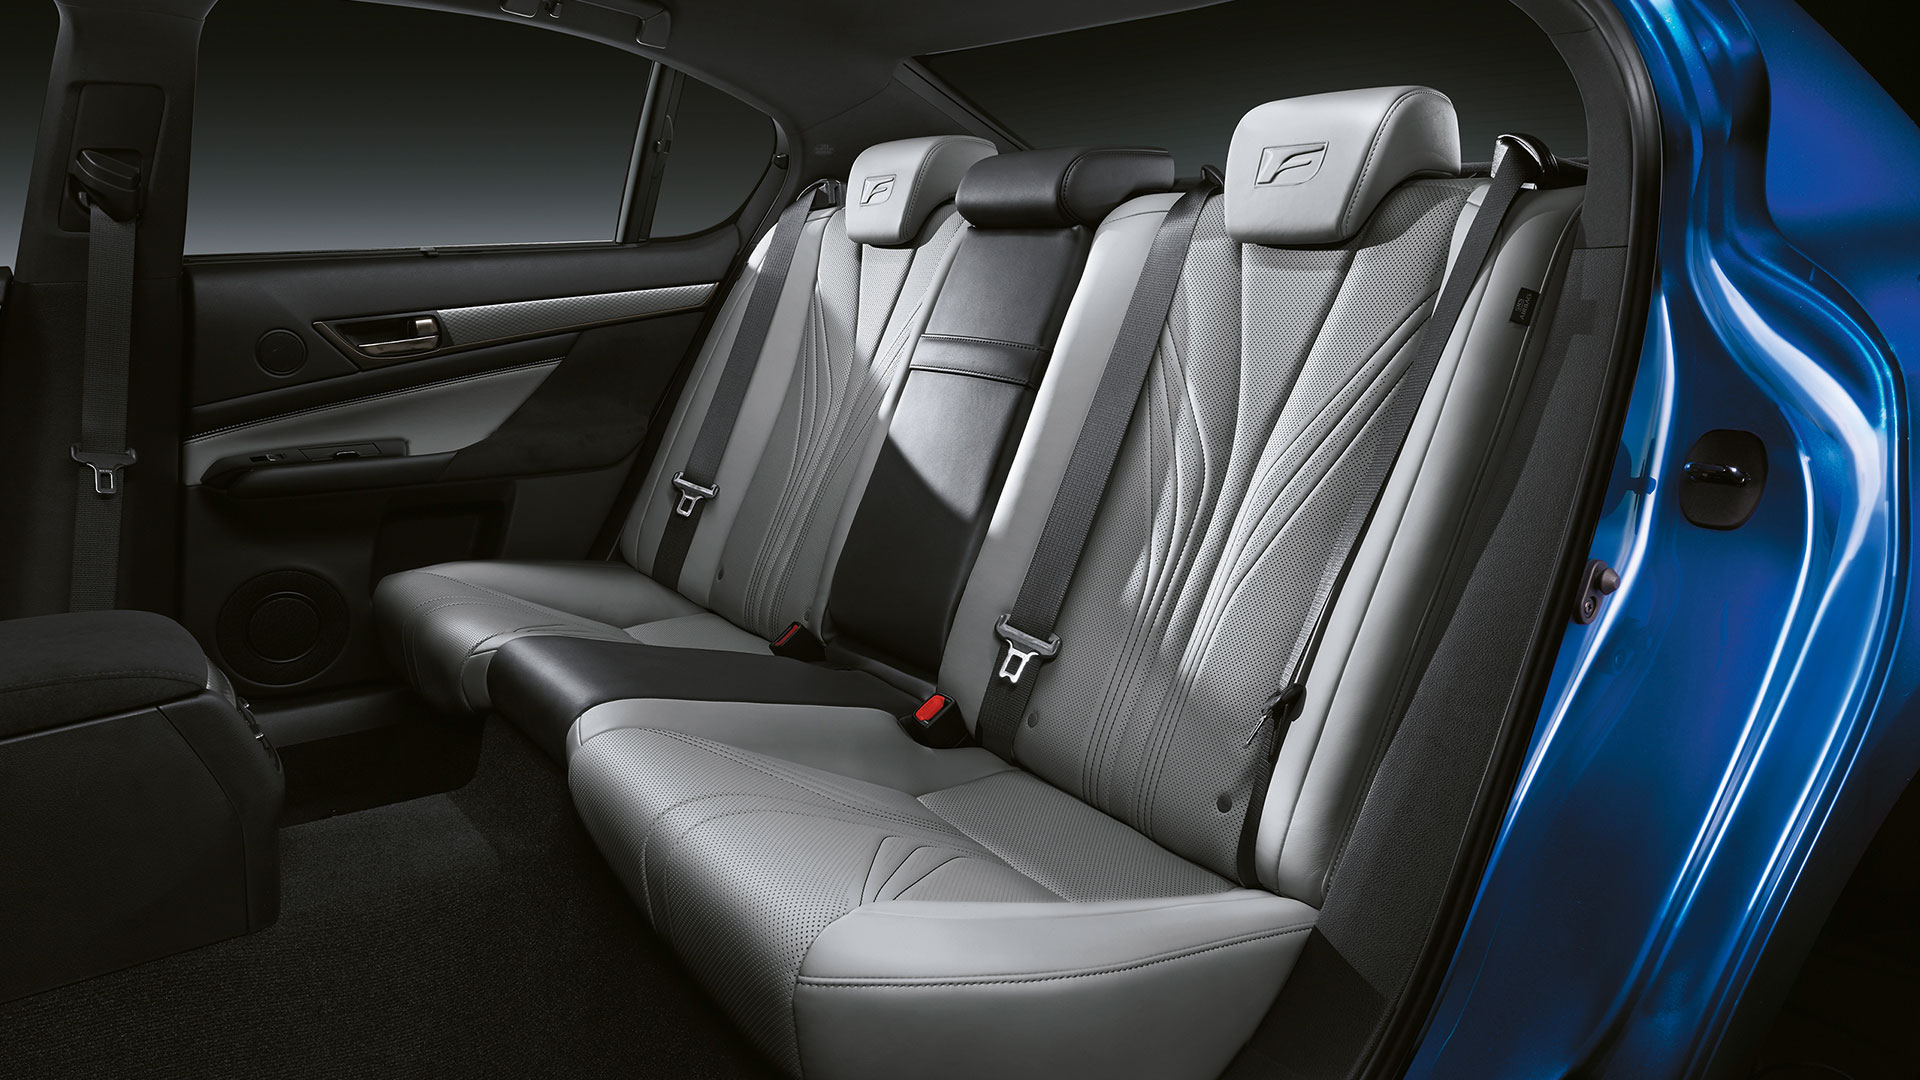 2017 lexus gs f features rear heated seats